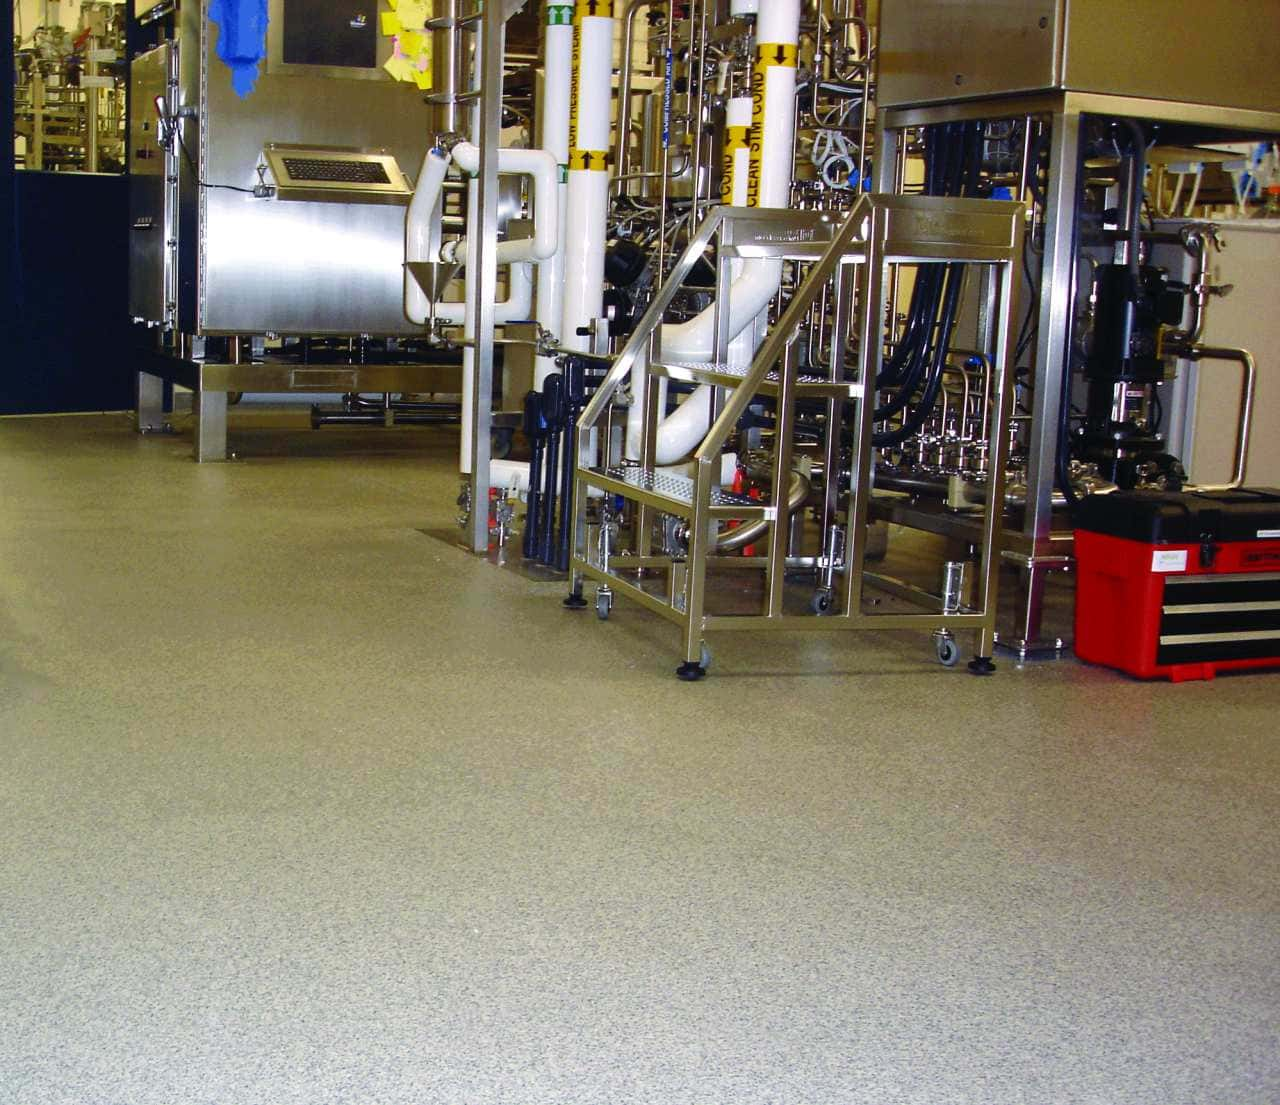 Epoxy floors are a tough, resilient and very durable type of floor coating